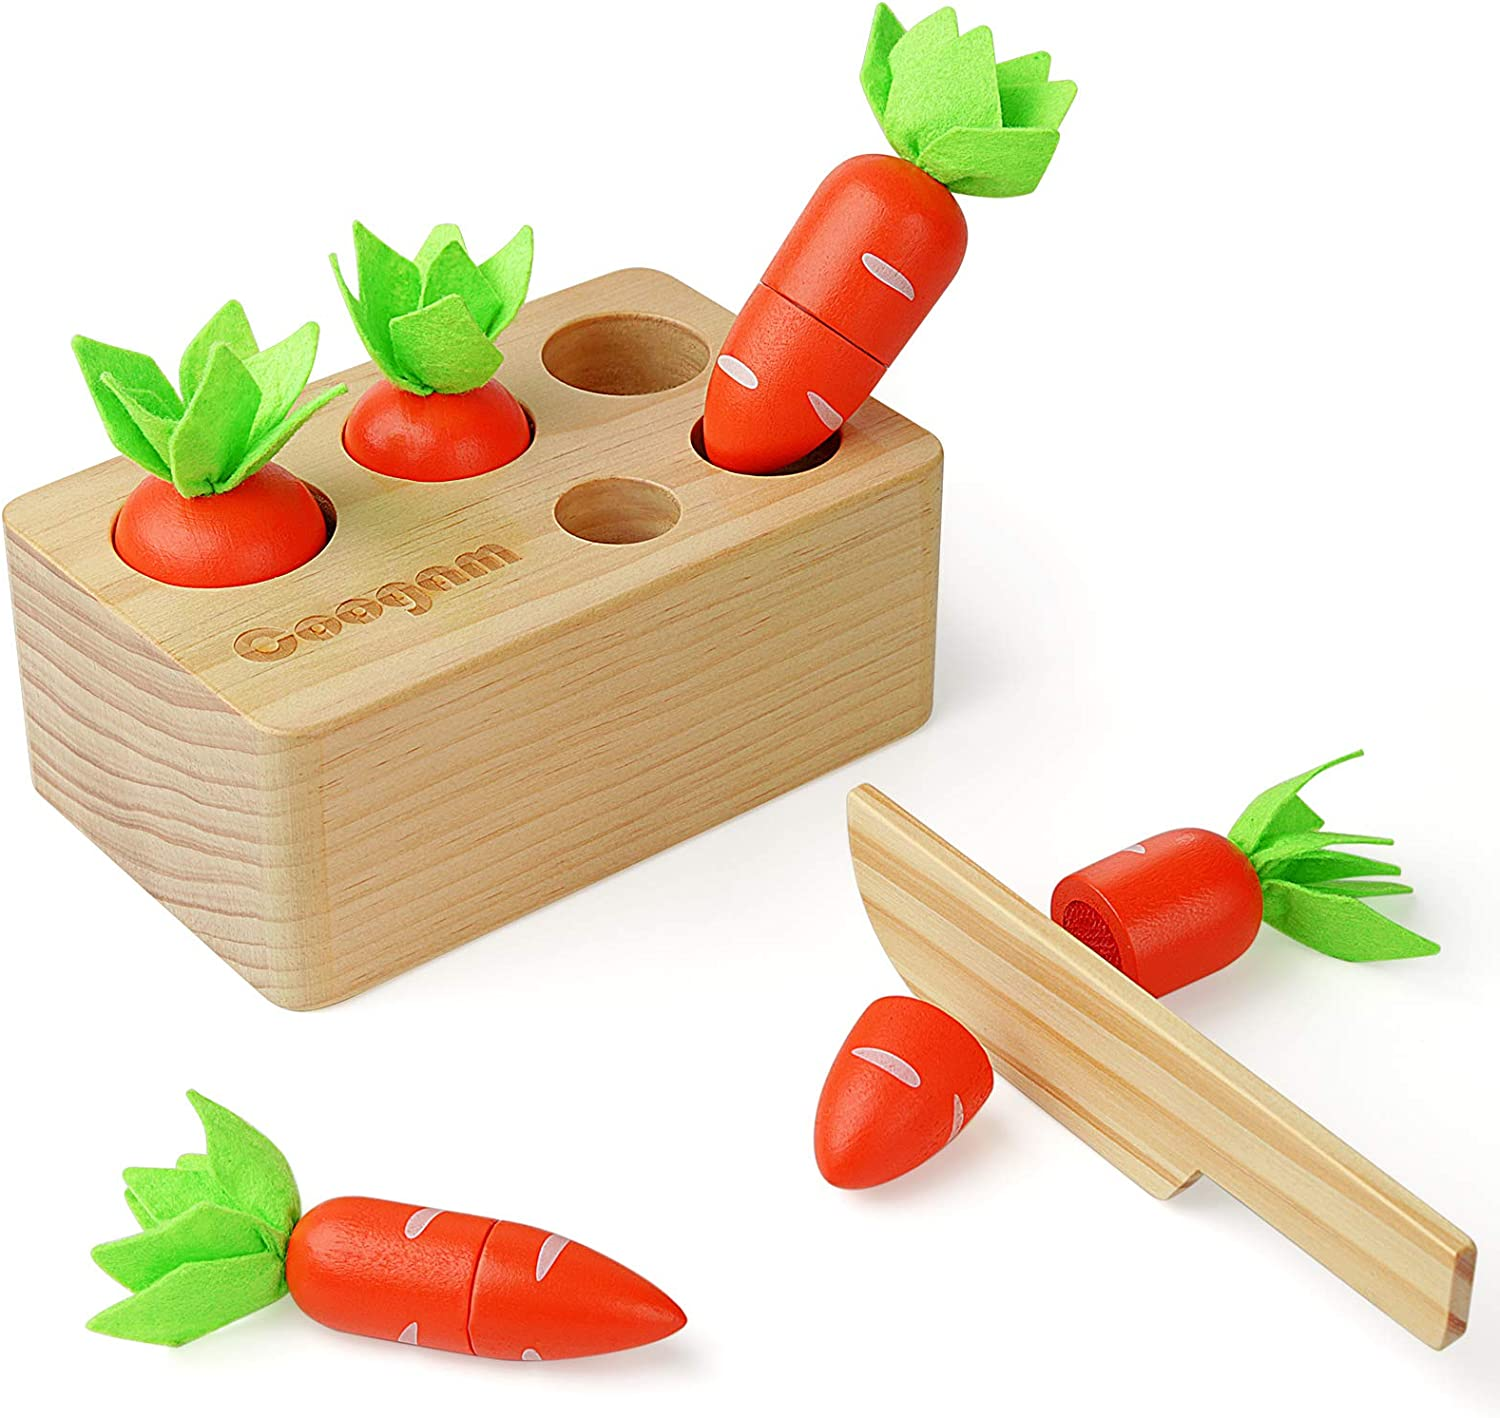 Coogam Baby Carrots Sorting Toy, Wooden Montessori Color Shape Sorter Cutting Harvest Matching Game for Toddler Fine Motor Skill, Early Learning Preschool Year Old Educational Gift Toy